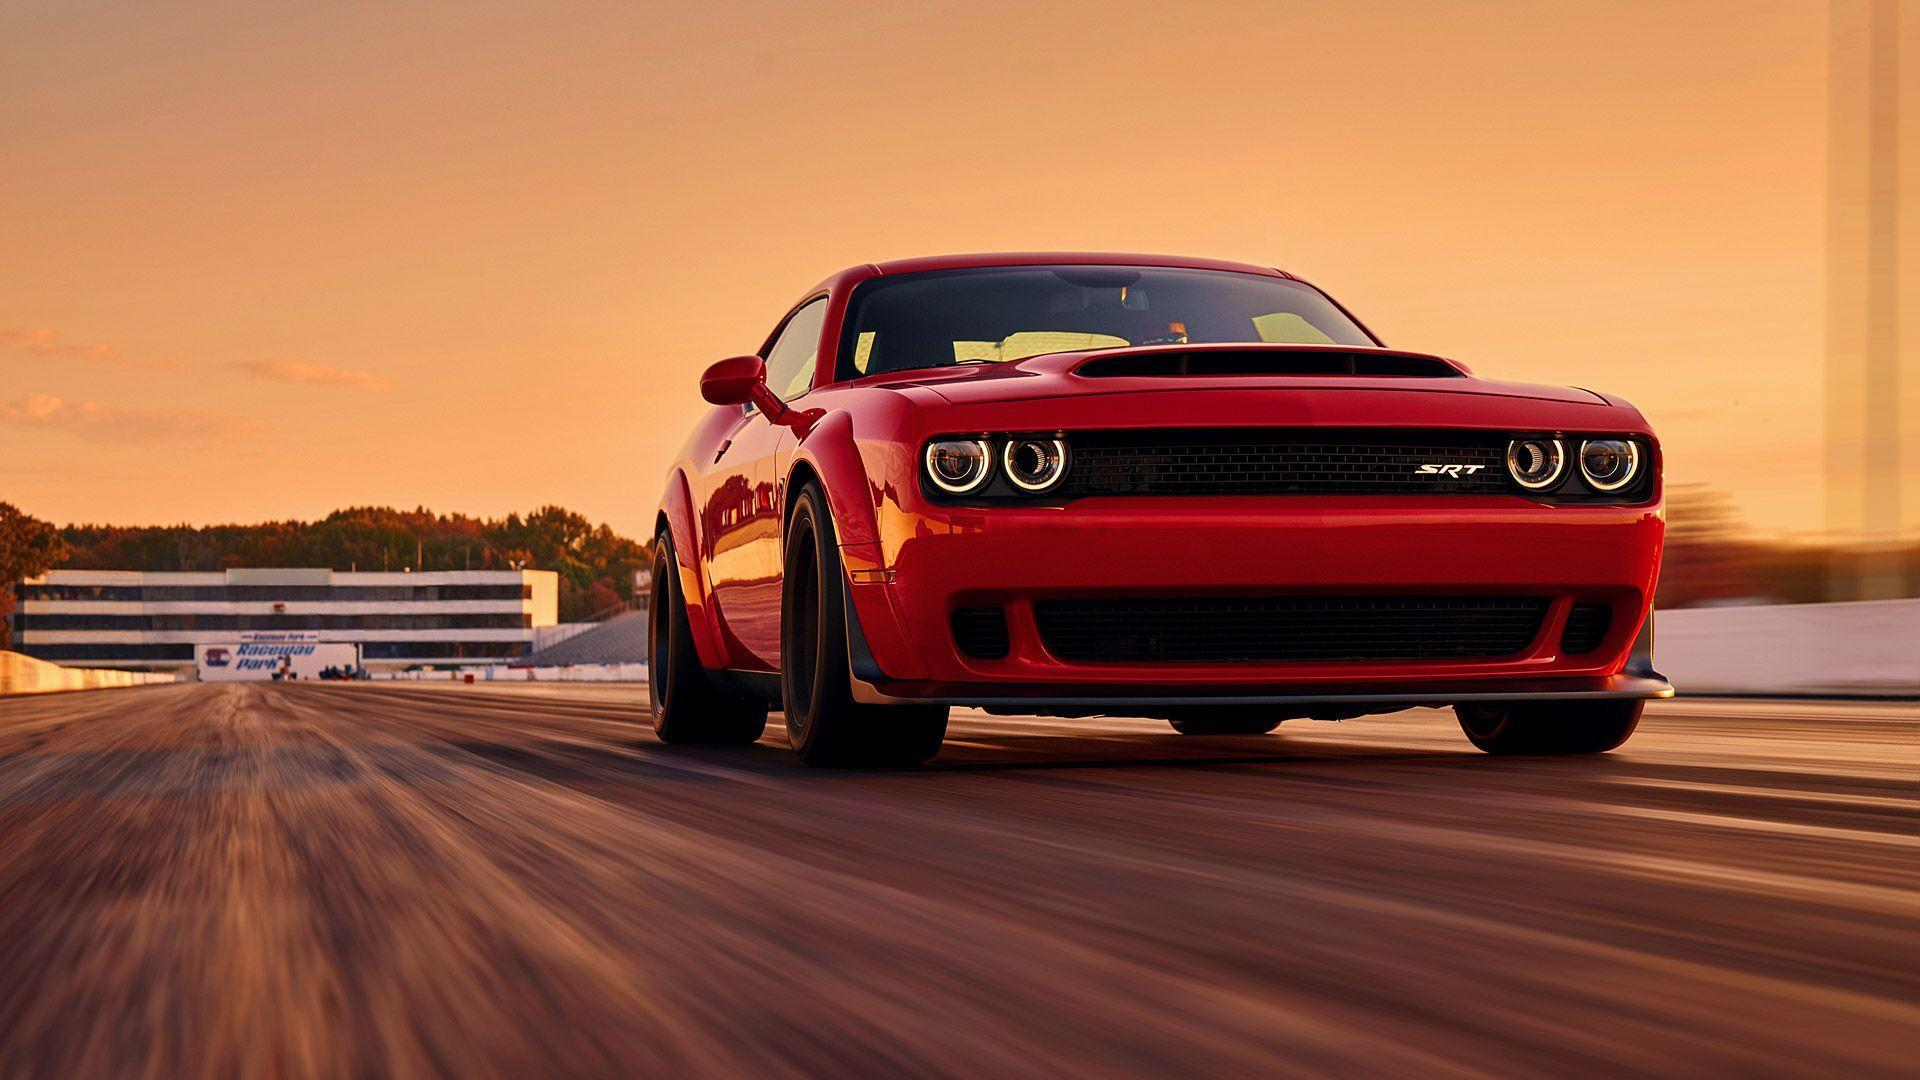 Dodge Demon Wallpapers Wallpaper Cave